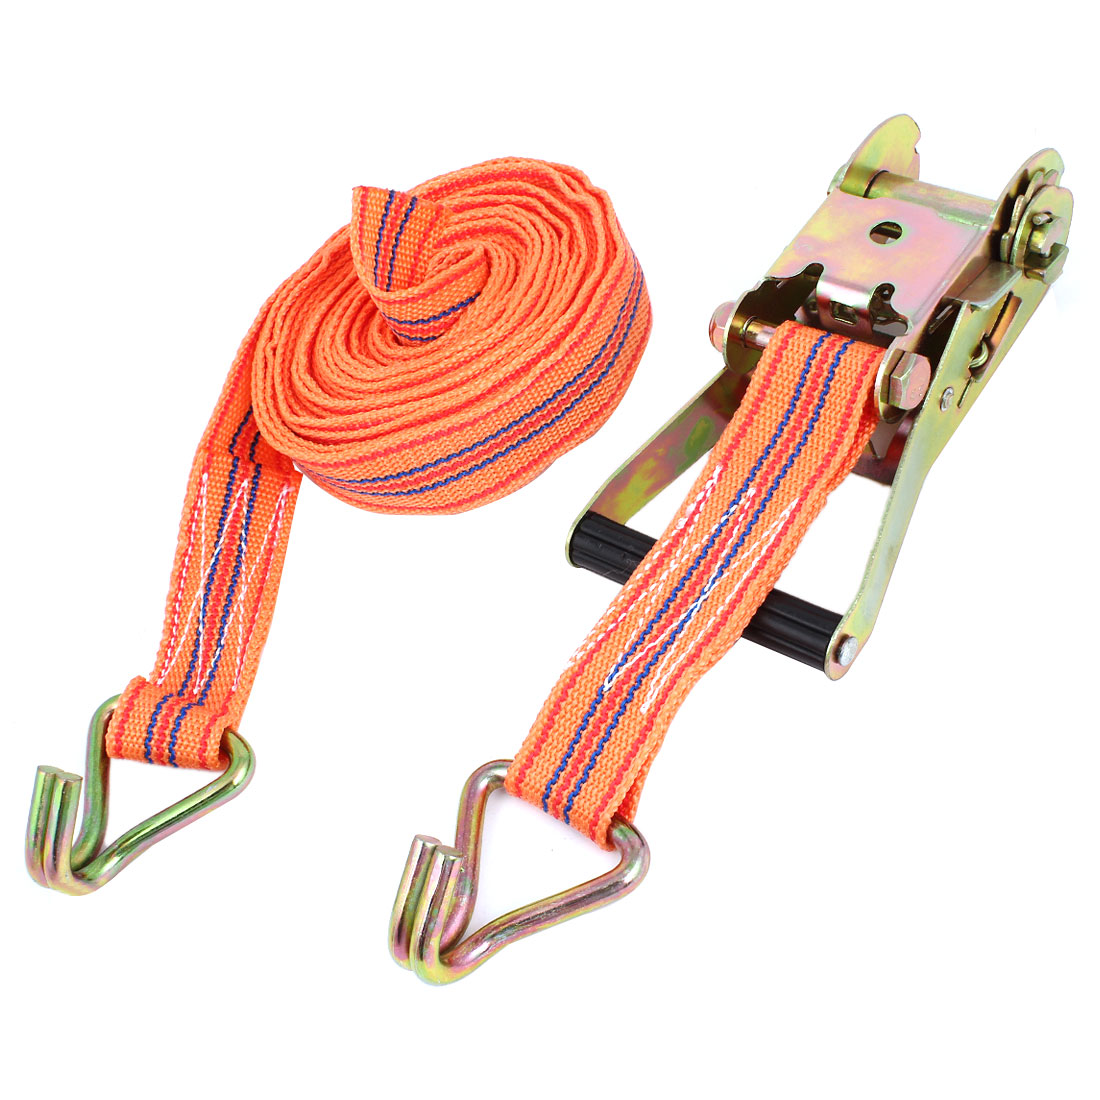 Truck Cargo Binding Metal Hook Ratchet Tie Down Strap 8M 26ft Orange